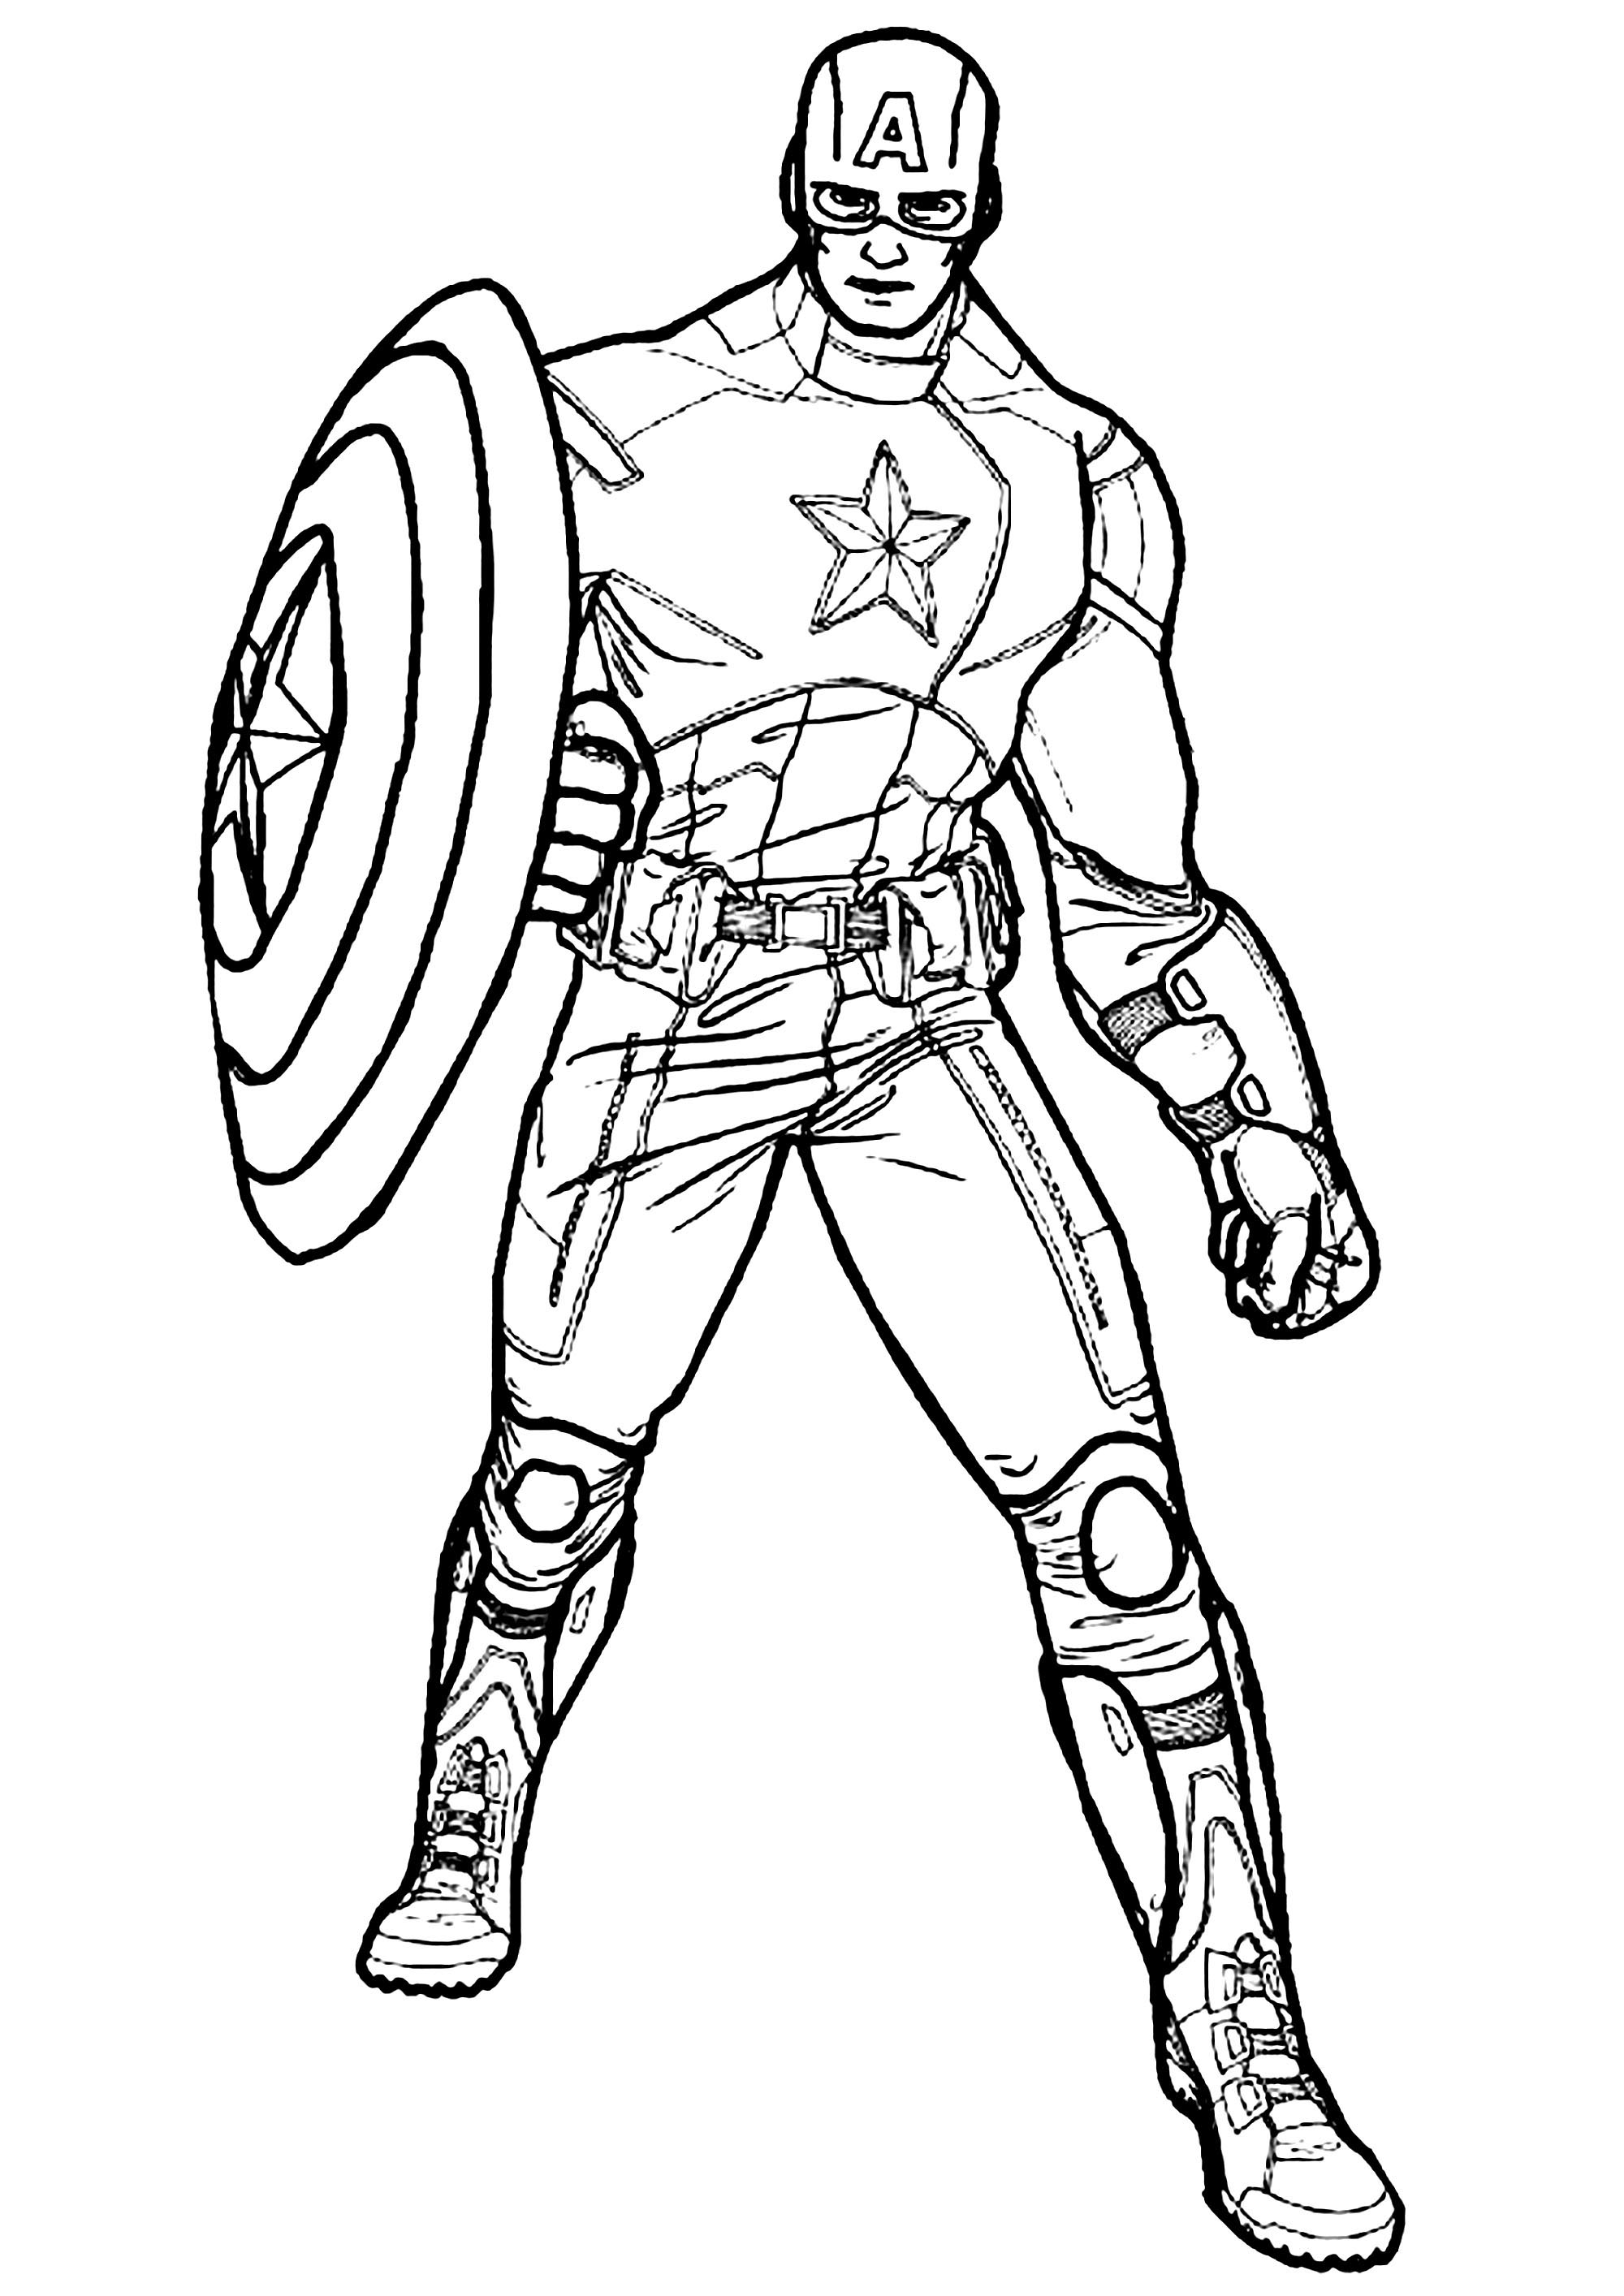 captain america for coloring captain america coloring pages to download and print for free for america coloring captain